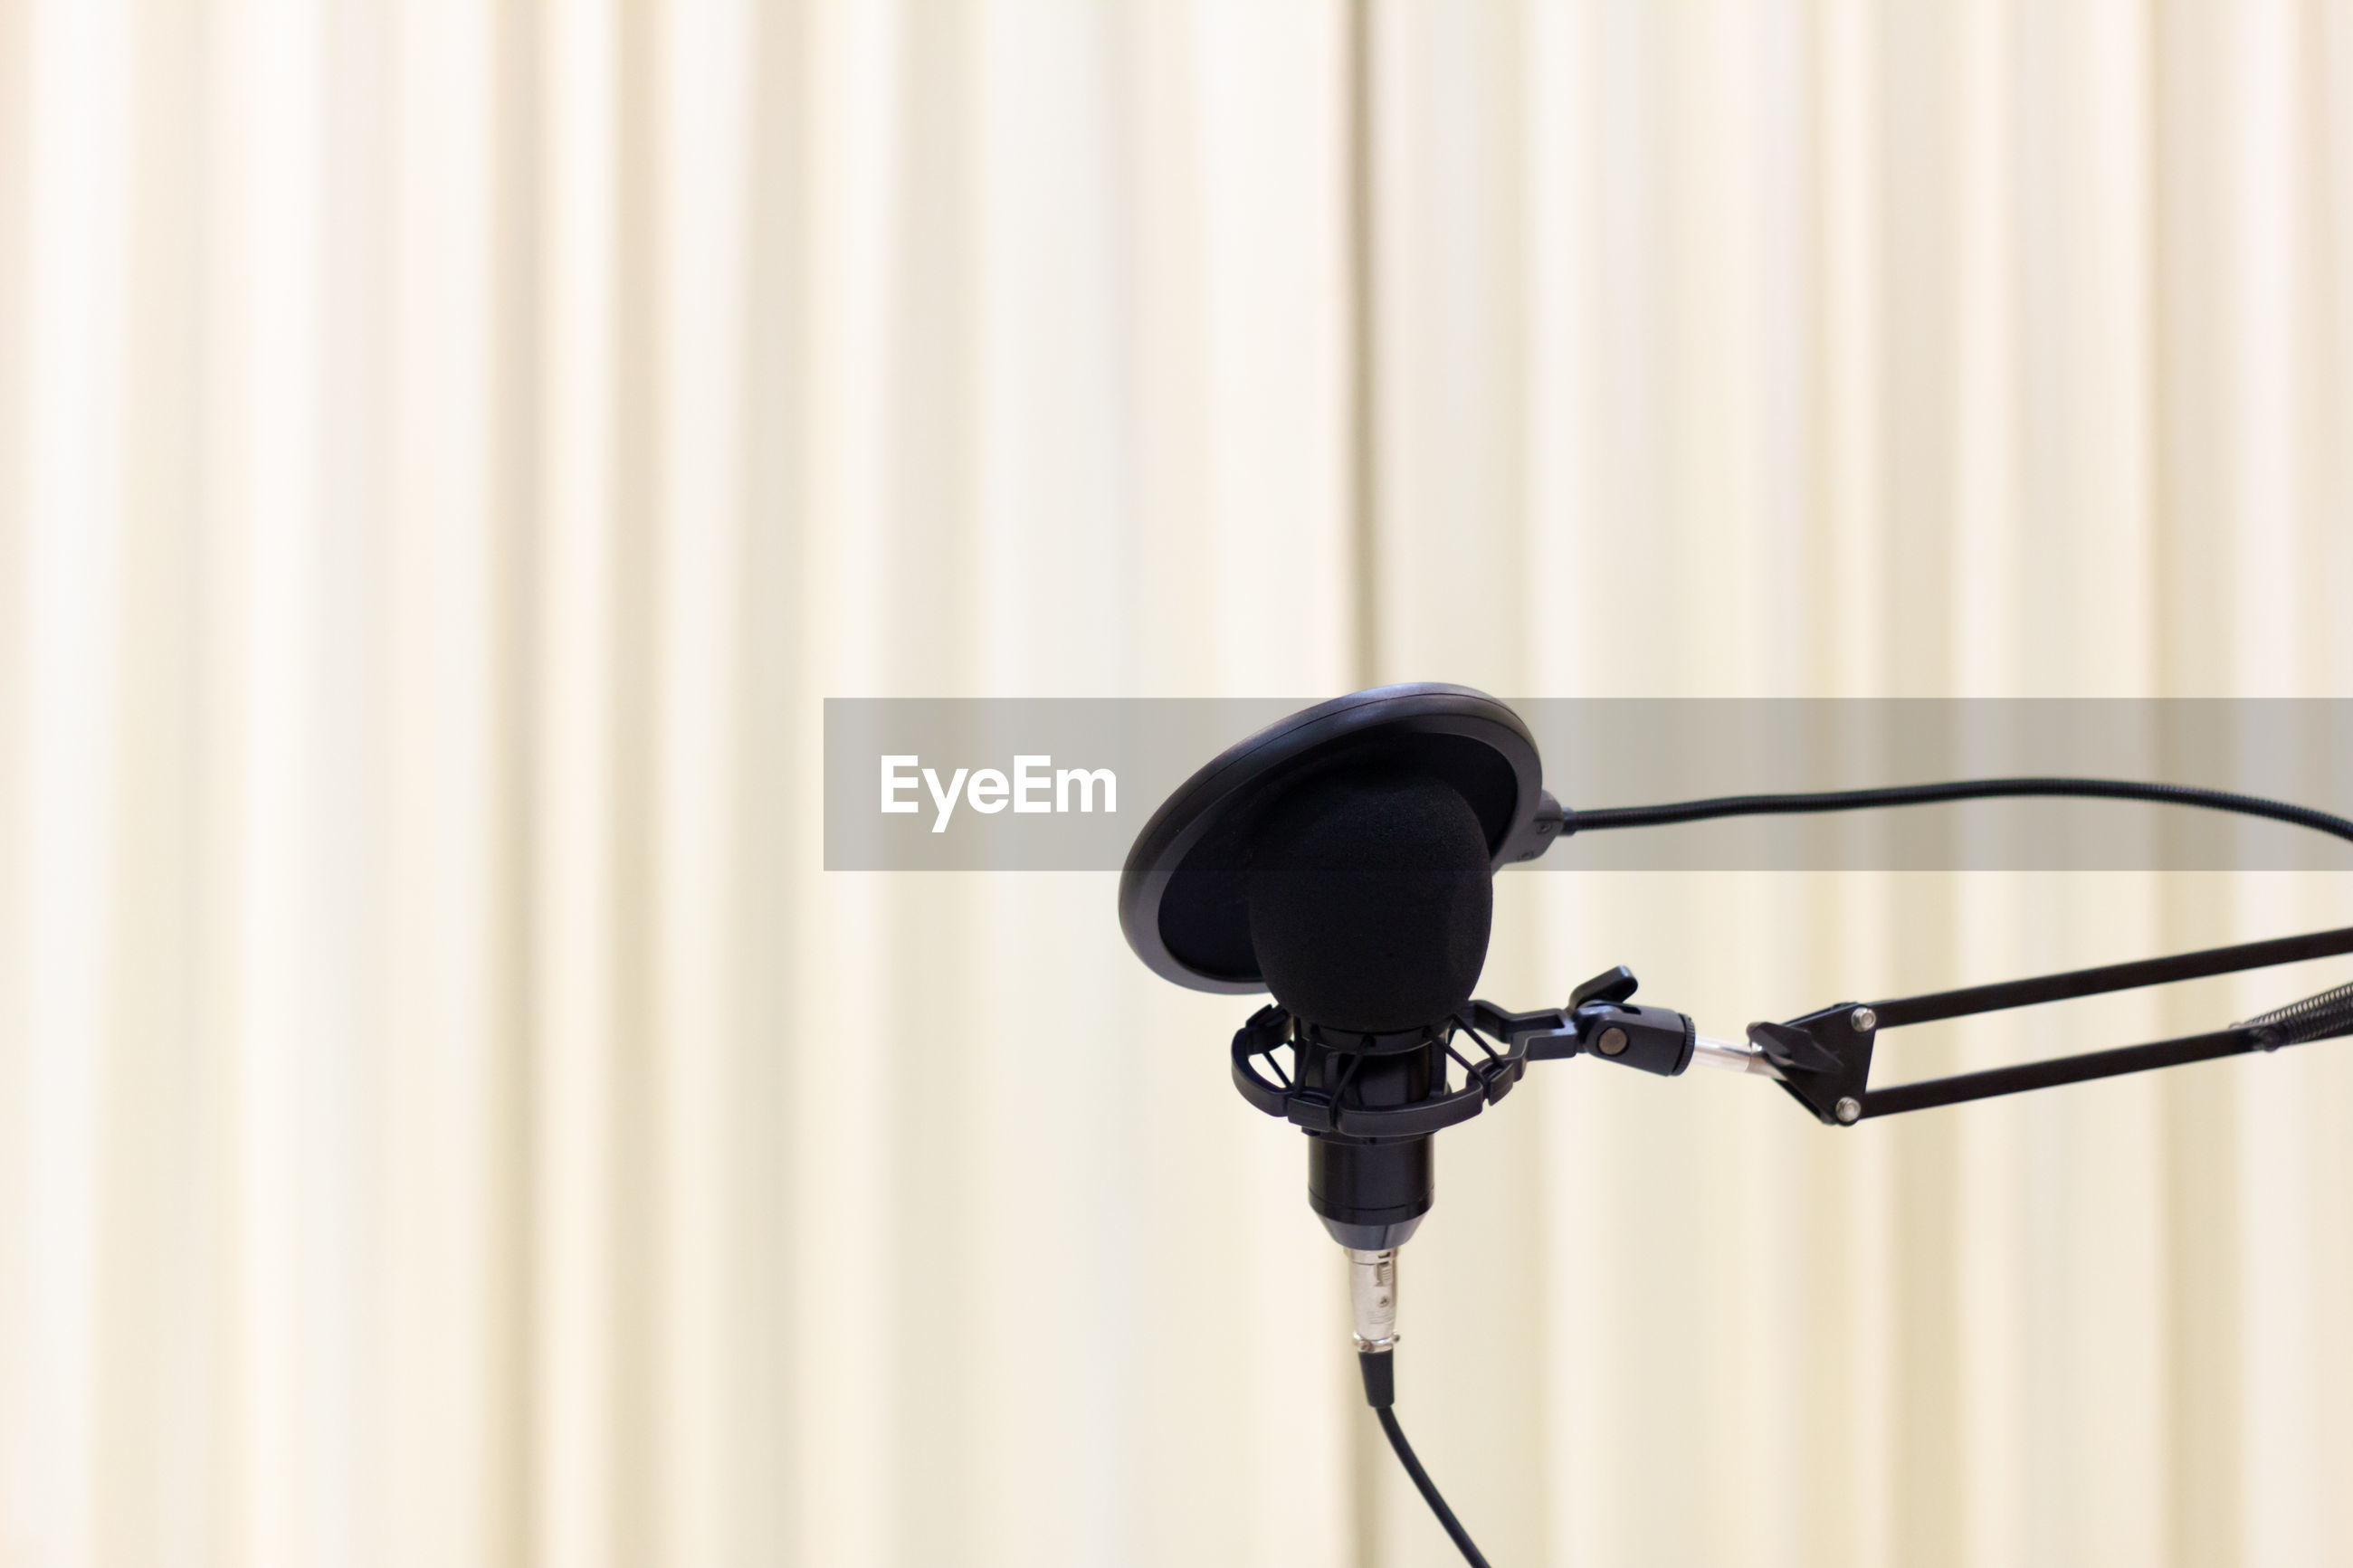 Close-up black microphone with stand and blurred background